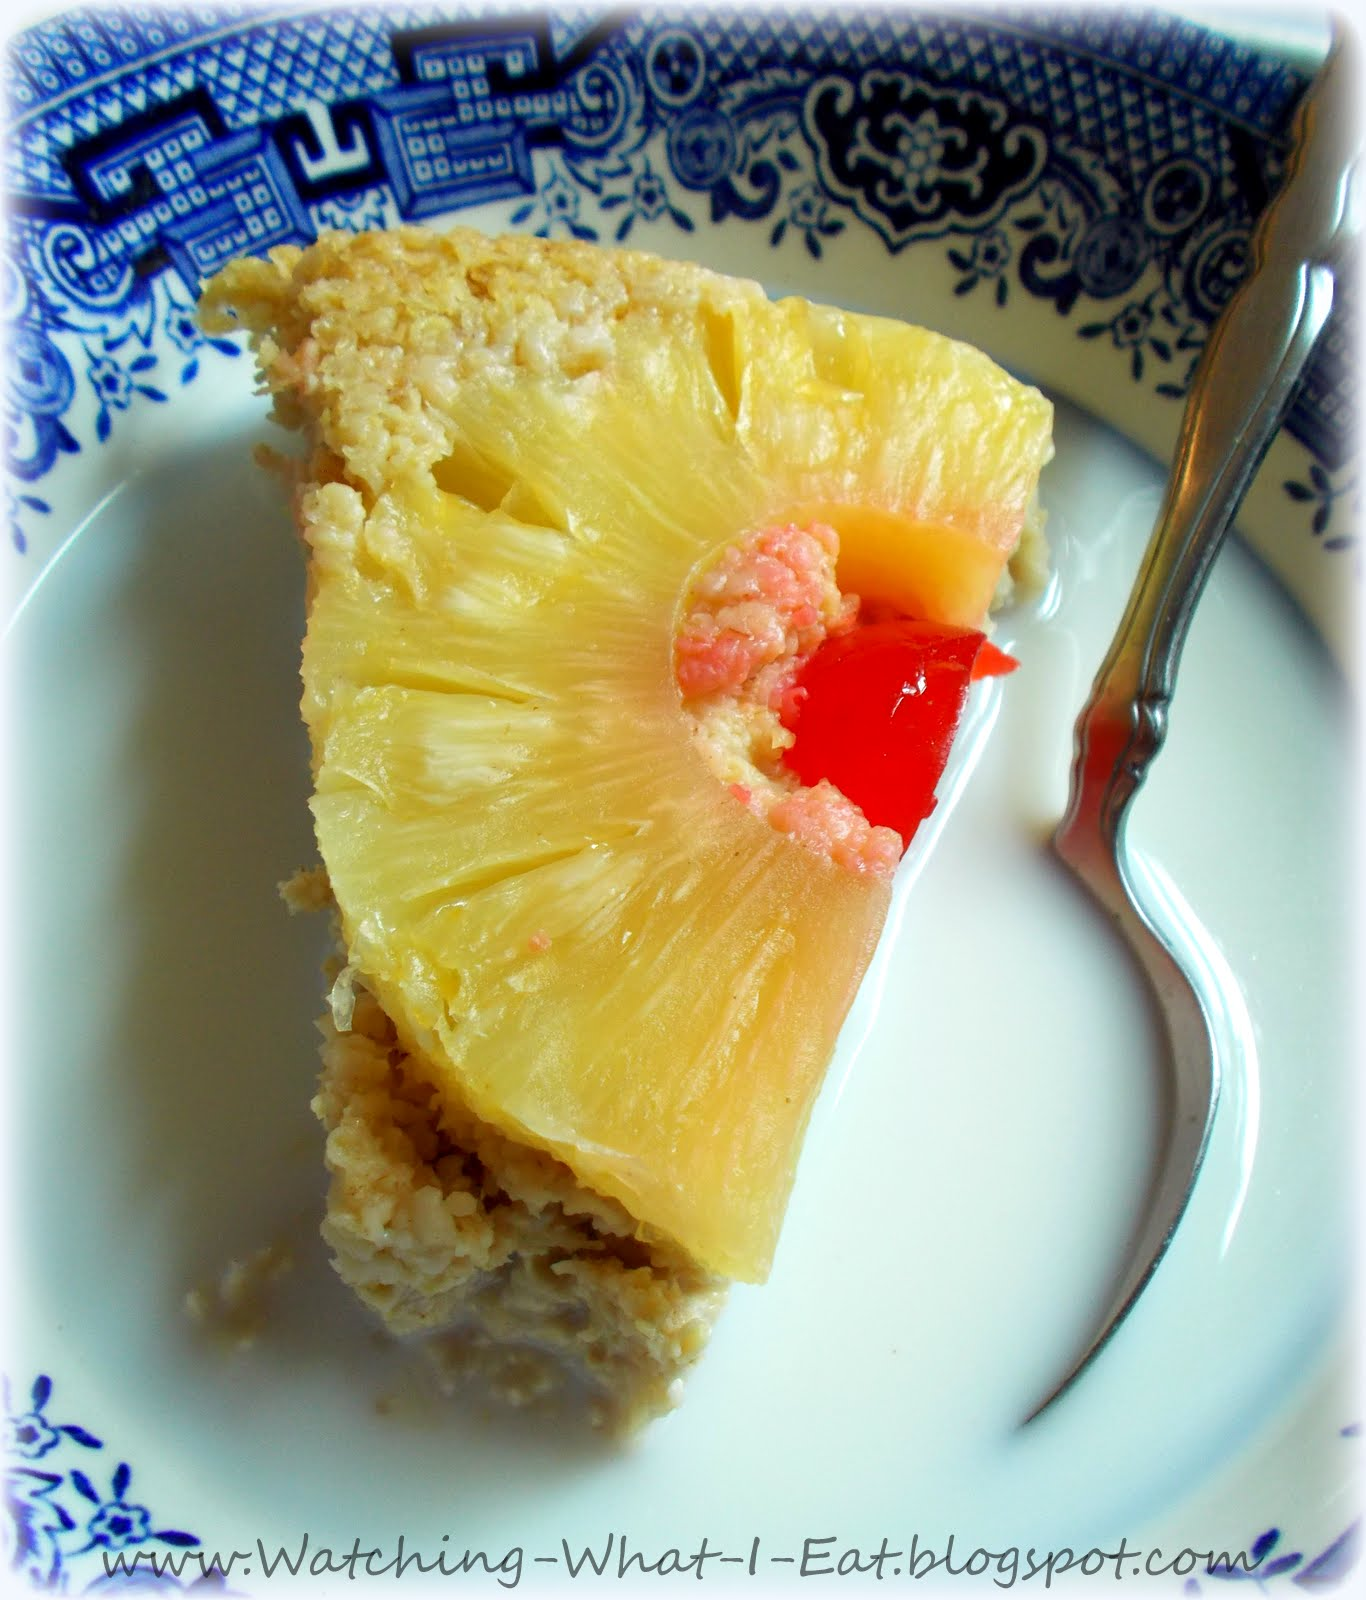 Watching What I Eat: Pineapple Upside-Down Oat Bran Breakfast Cake